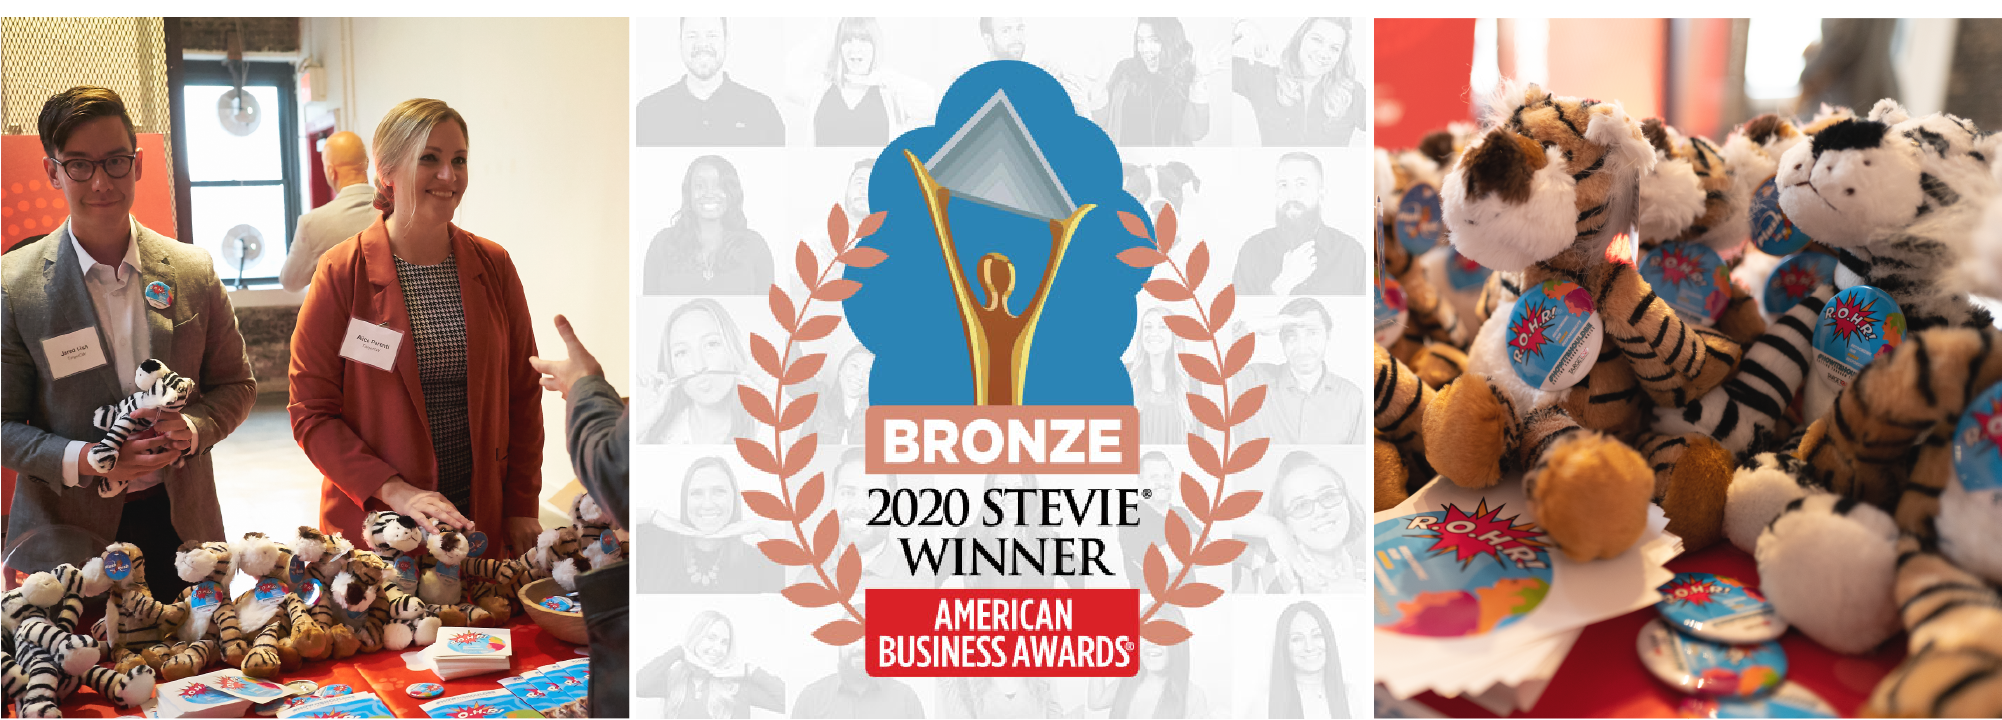 Stevie Award, TargetCW wins Bronze Stevie® Award for Corporate Social Responsibility Program of the Year